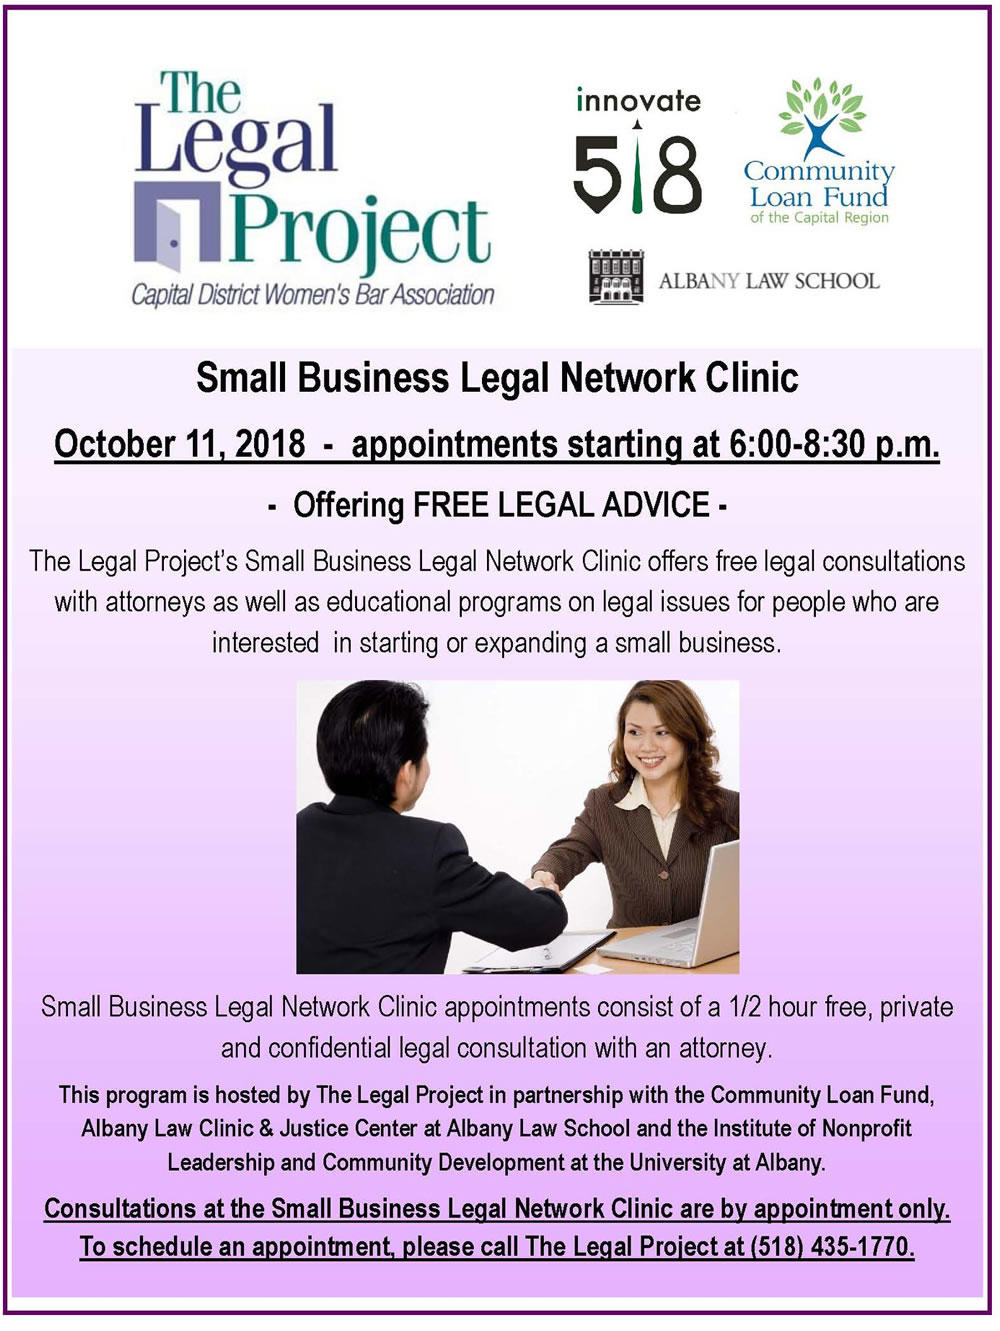 e148e2705acd Legal Project small business legal clinic poster 2018-October